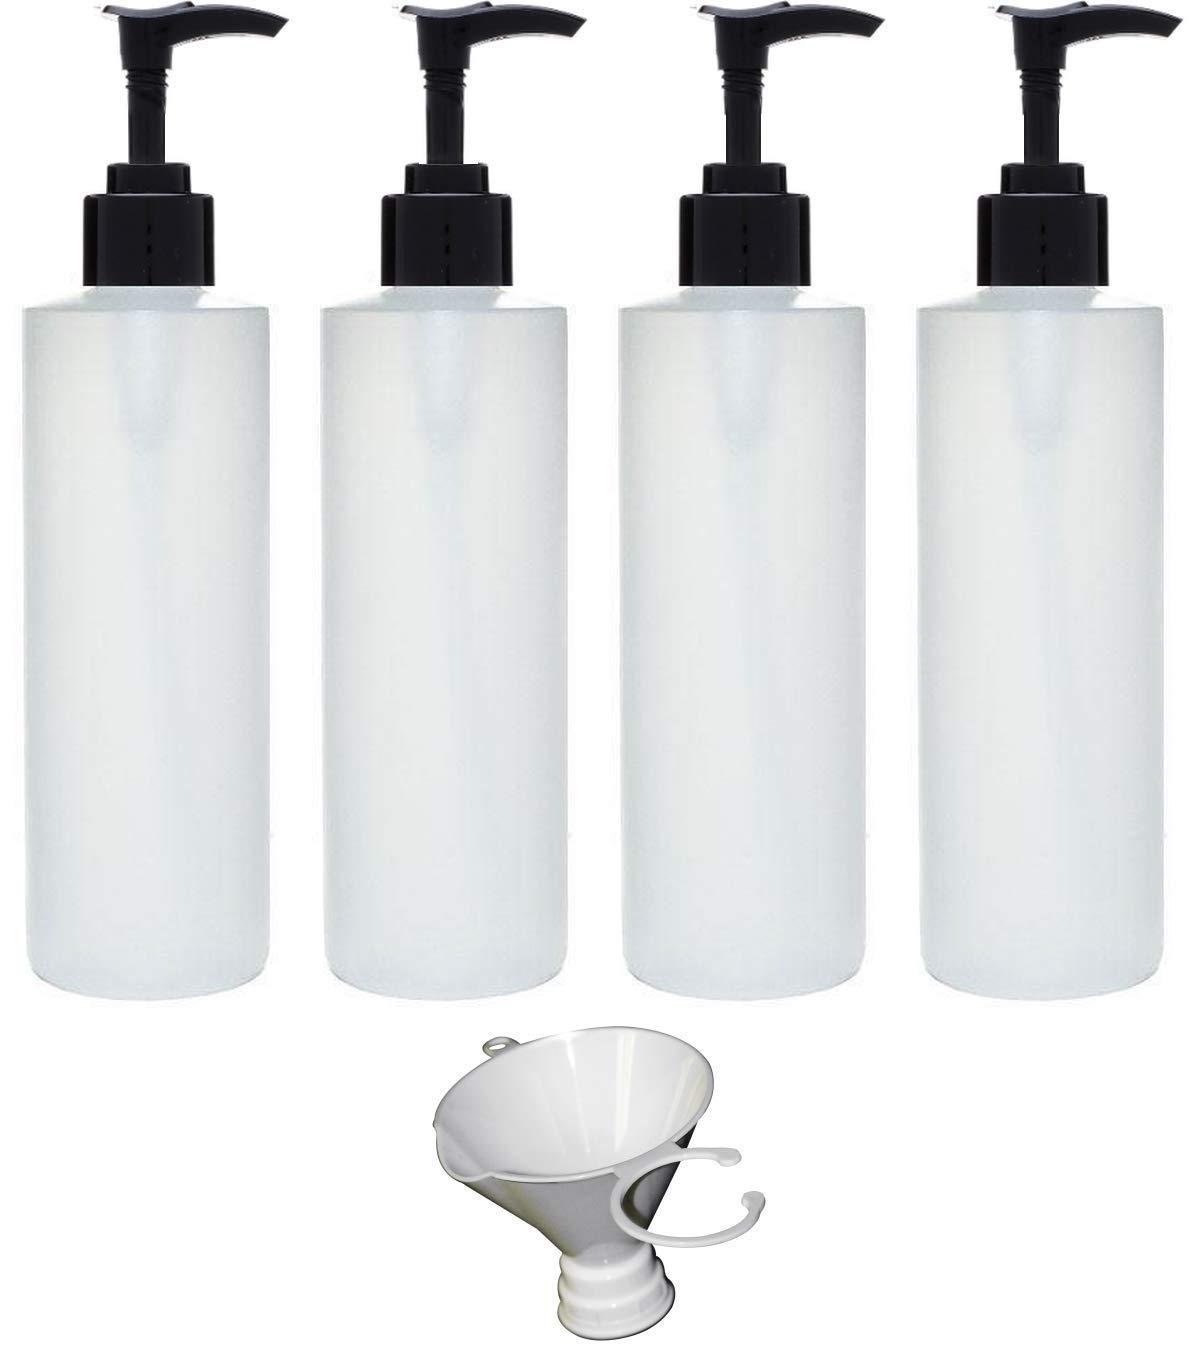 Earth's Essentials Four Pack of Refillable 8 Oz. HDPE Plastic Pump Bottles with Patented Screw On Funnel-Great for Dispensing Lotions, Shampoos and Massage Oils. Earth' s Essentials Dozen8oz